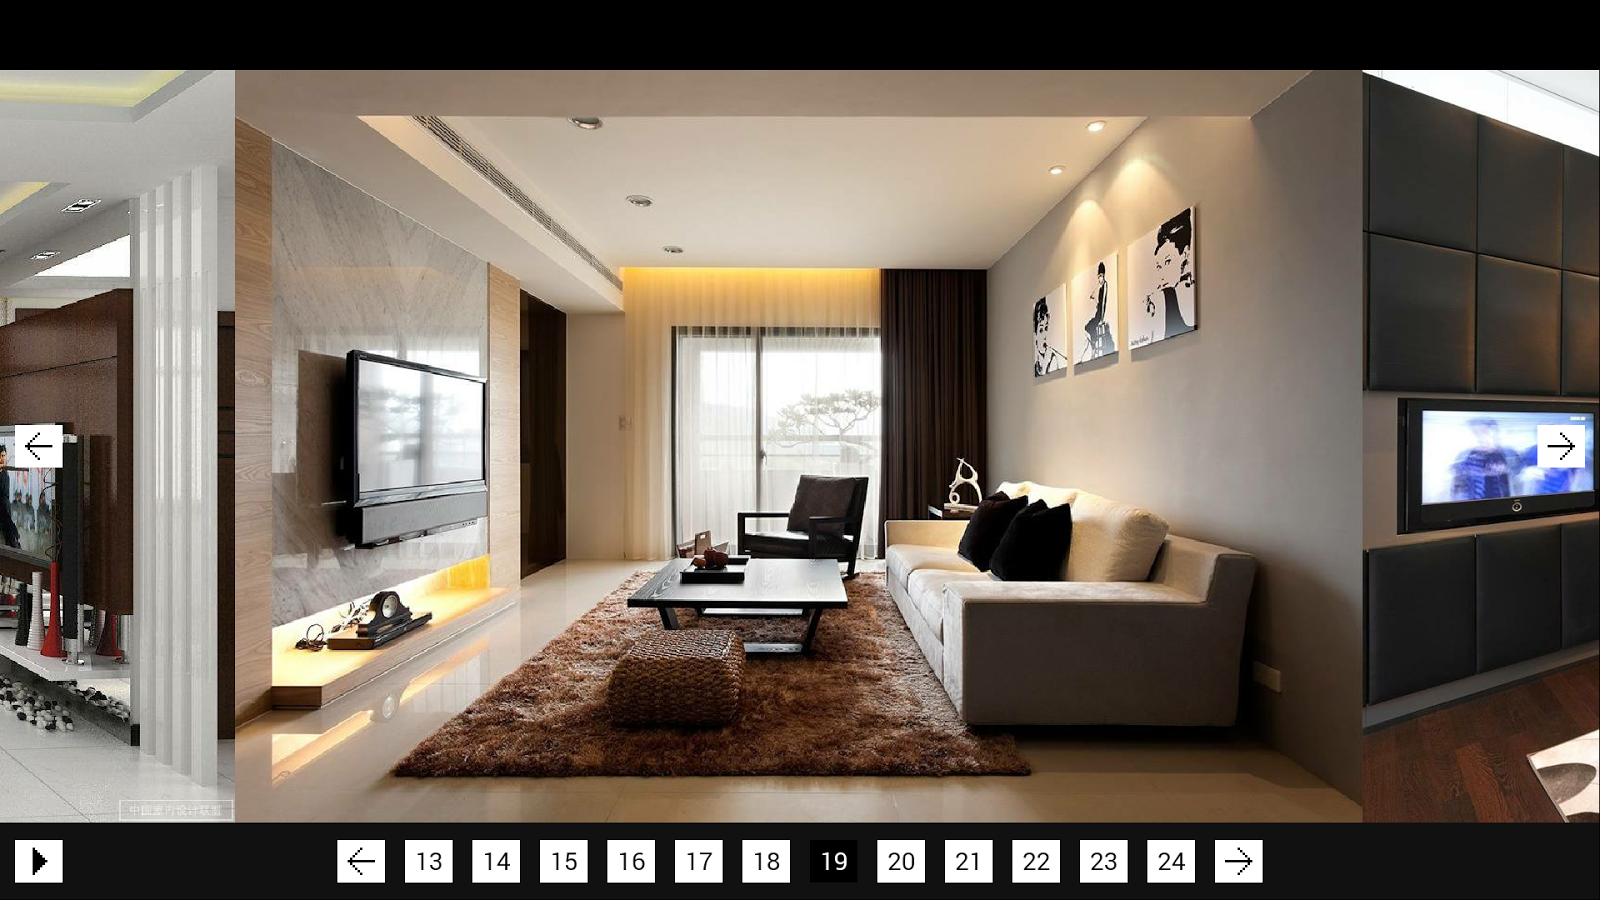 Home interior design android apps on google play for Full home interior design